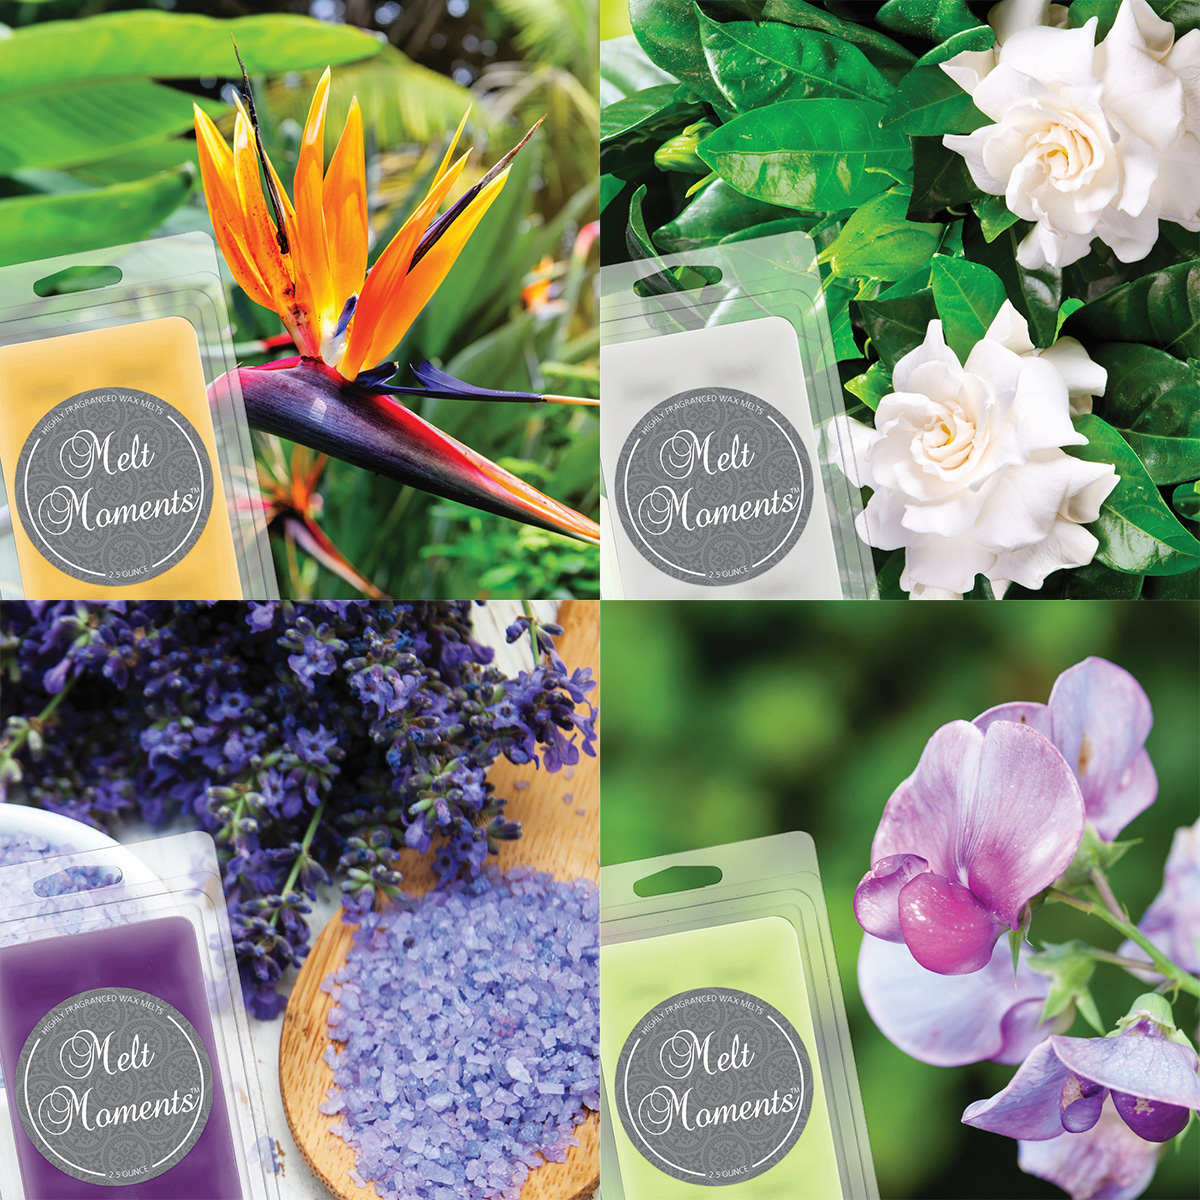 Melts - 4 Packs of Floral Fragrances (Variety Pack)